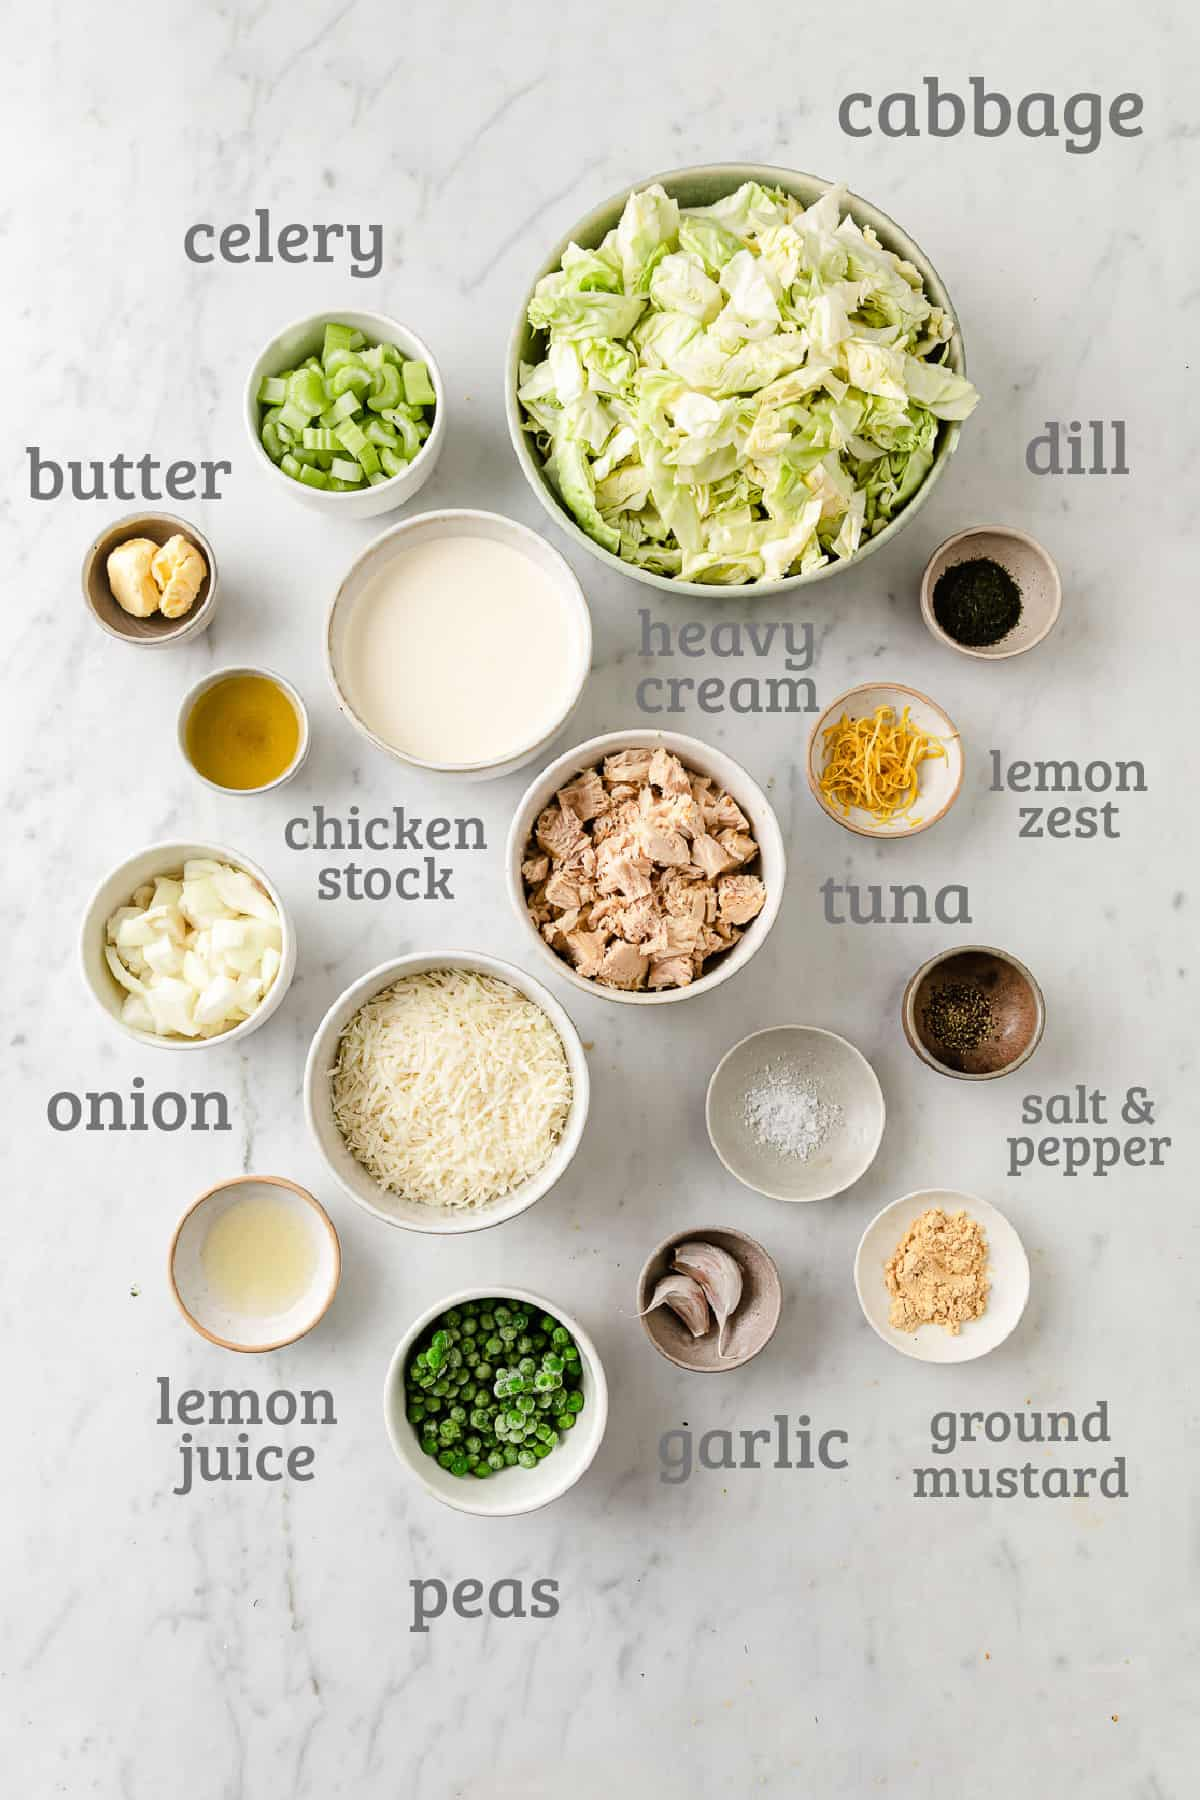 Ingredients for cabbage noodle tuna casserole - cabbage, tuna, lemon, garlic, cream, cheese, dill, celery